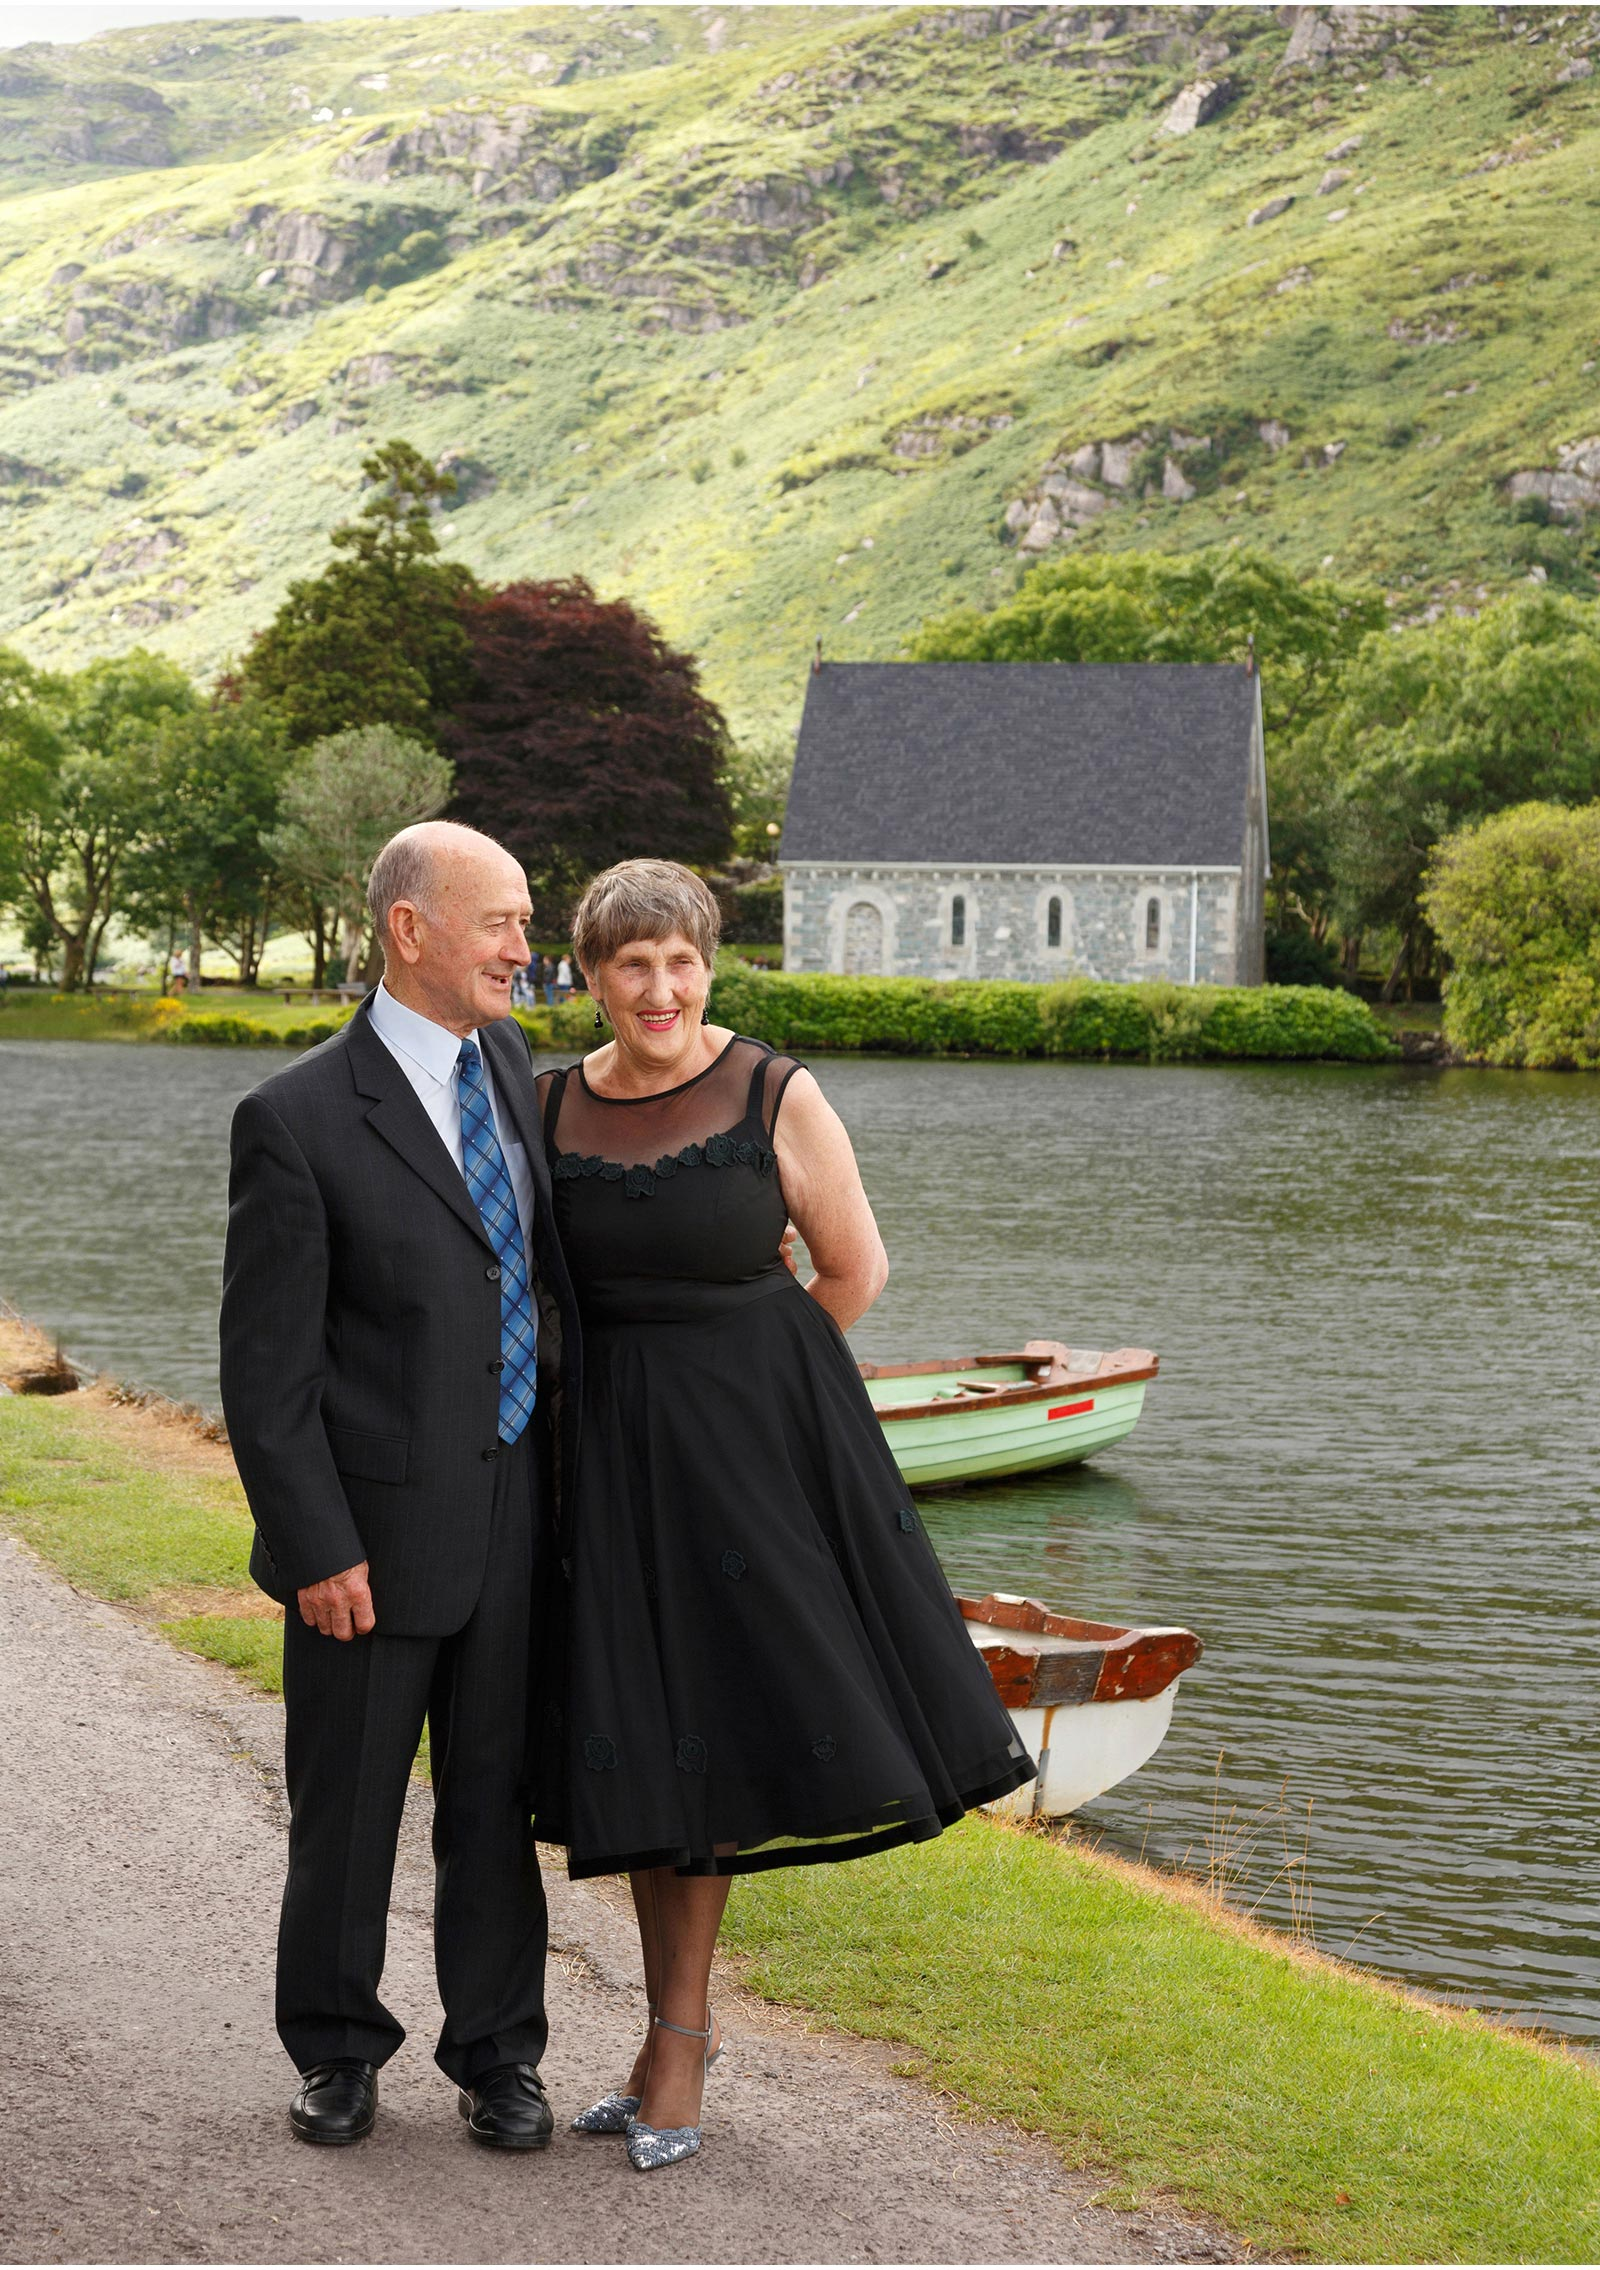 stylish couple pose at Gougane Barra and share a laugh. They are celebrating their 50th wedding anniversary